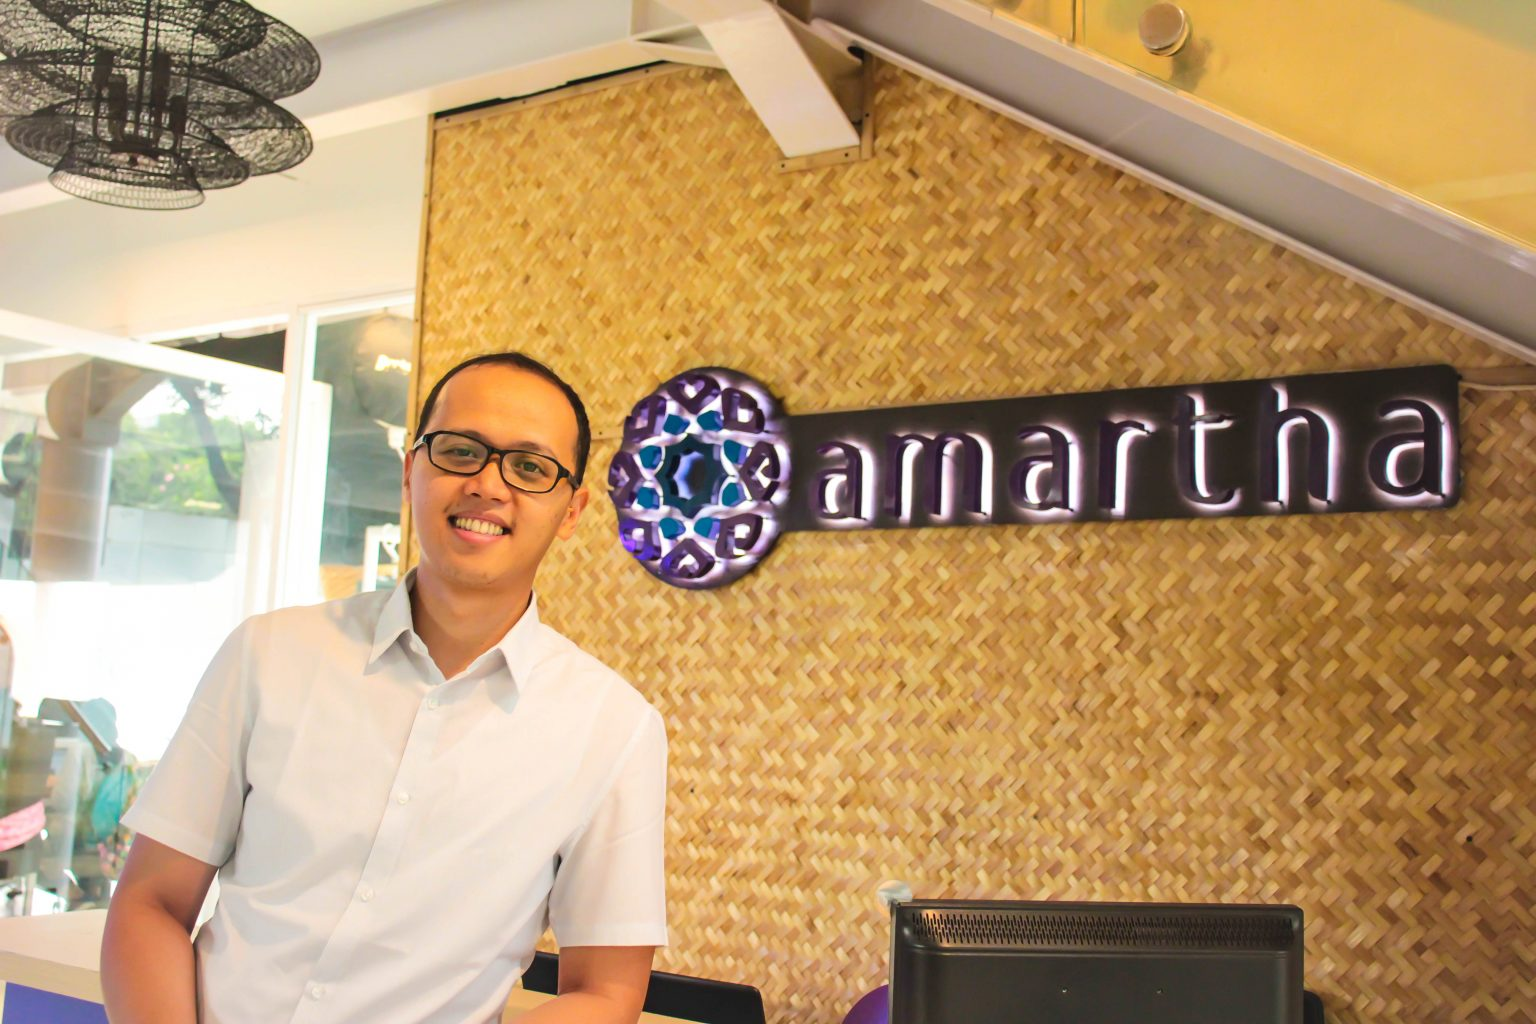 Meet AsiaBerlin Ambassador Aria Widyanto, Director and Chief Risk and Sustainability Officer (CRSO) of Amartha